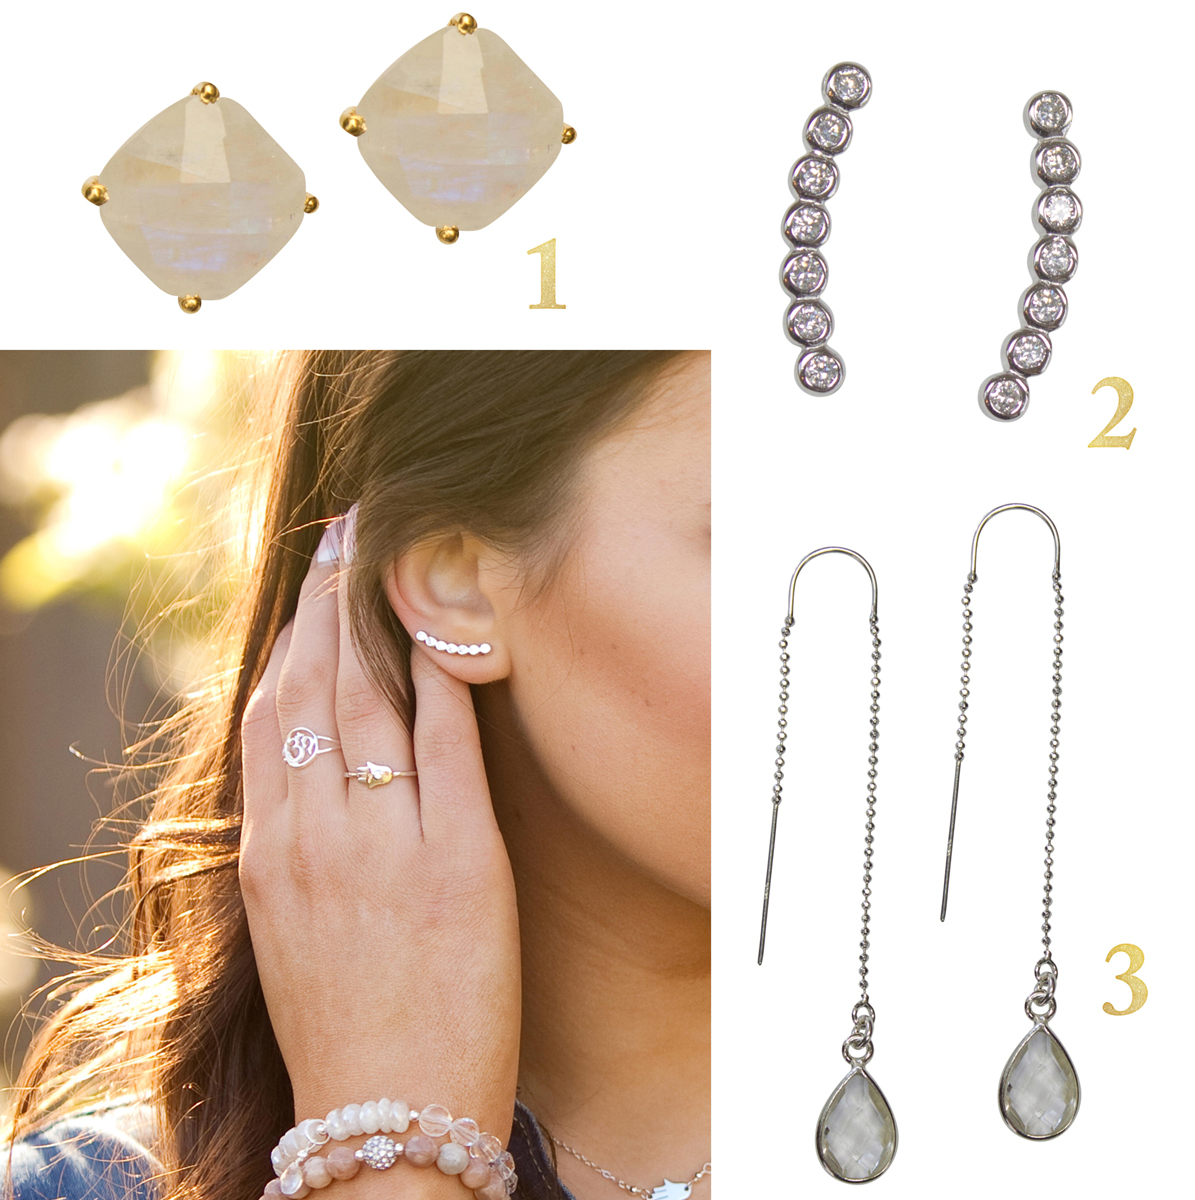 3 Must Have Earring Styles For Fall 2017